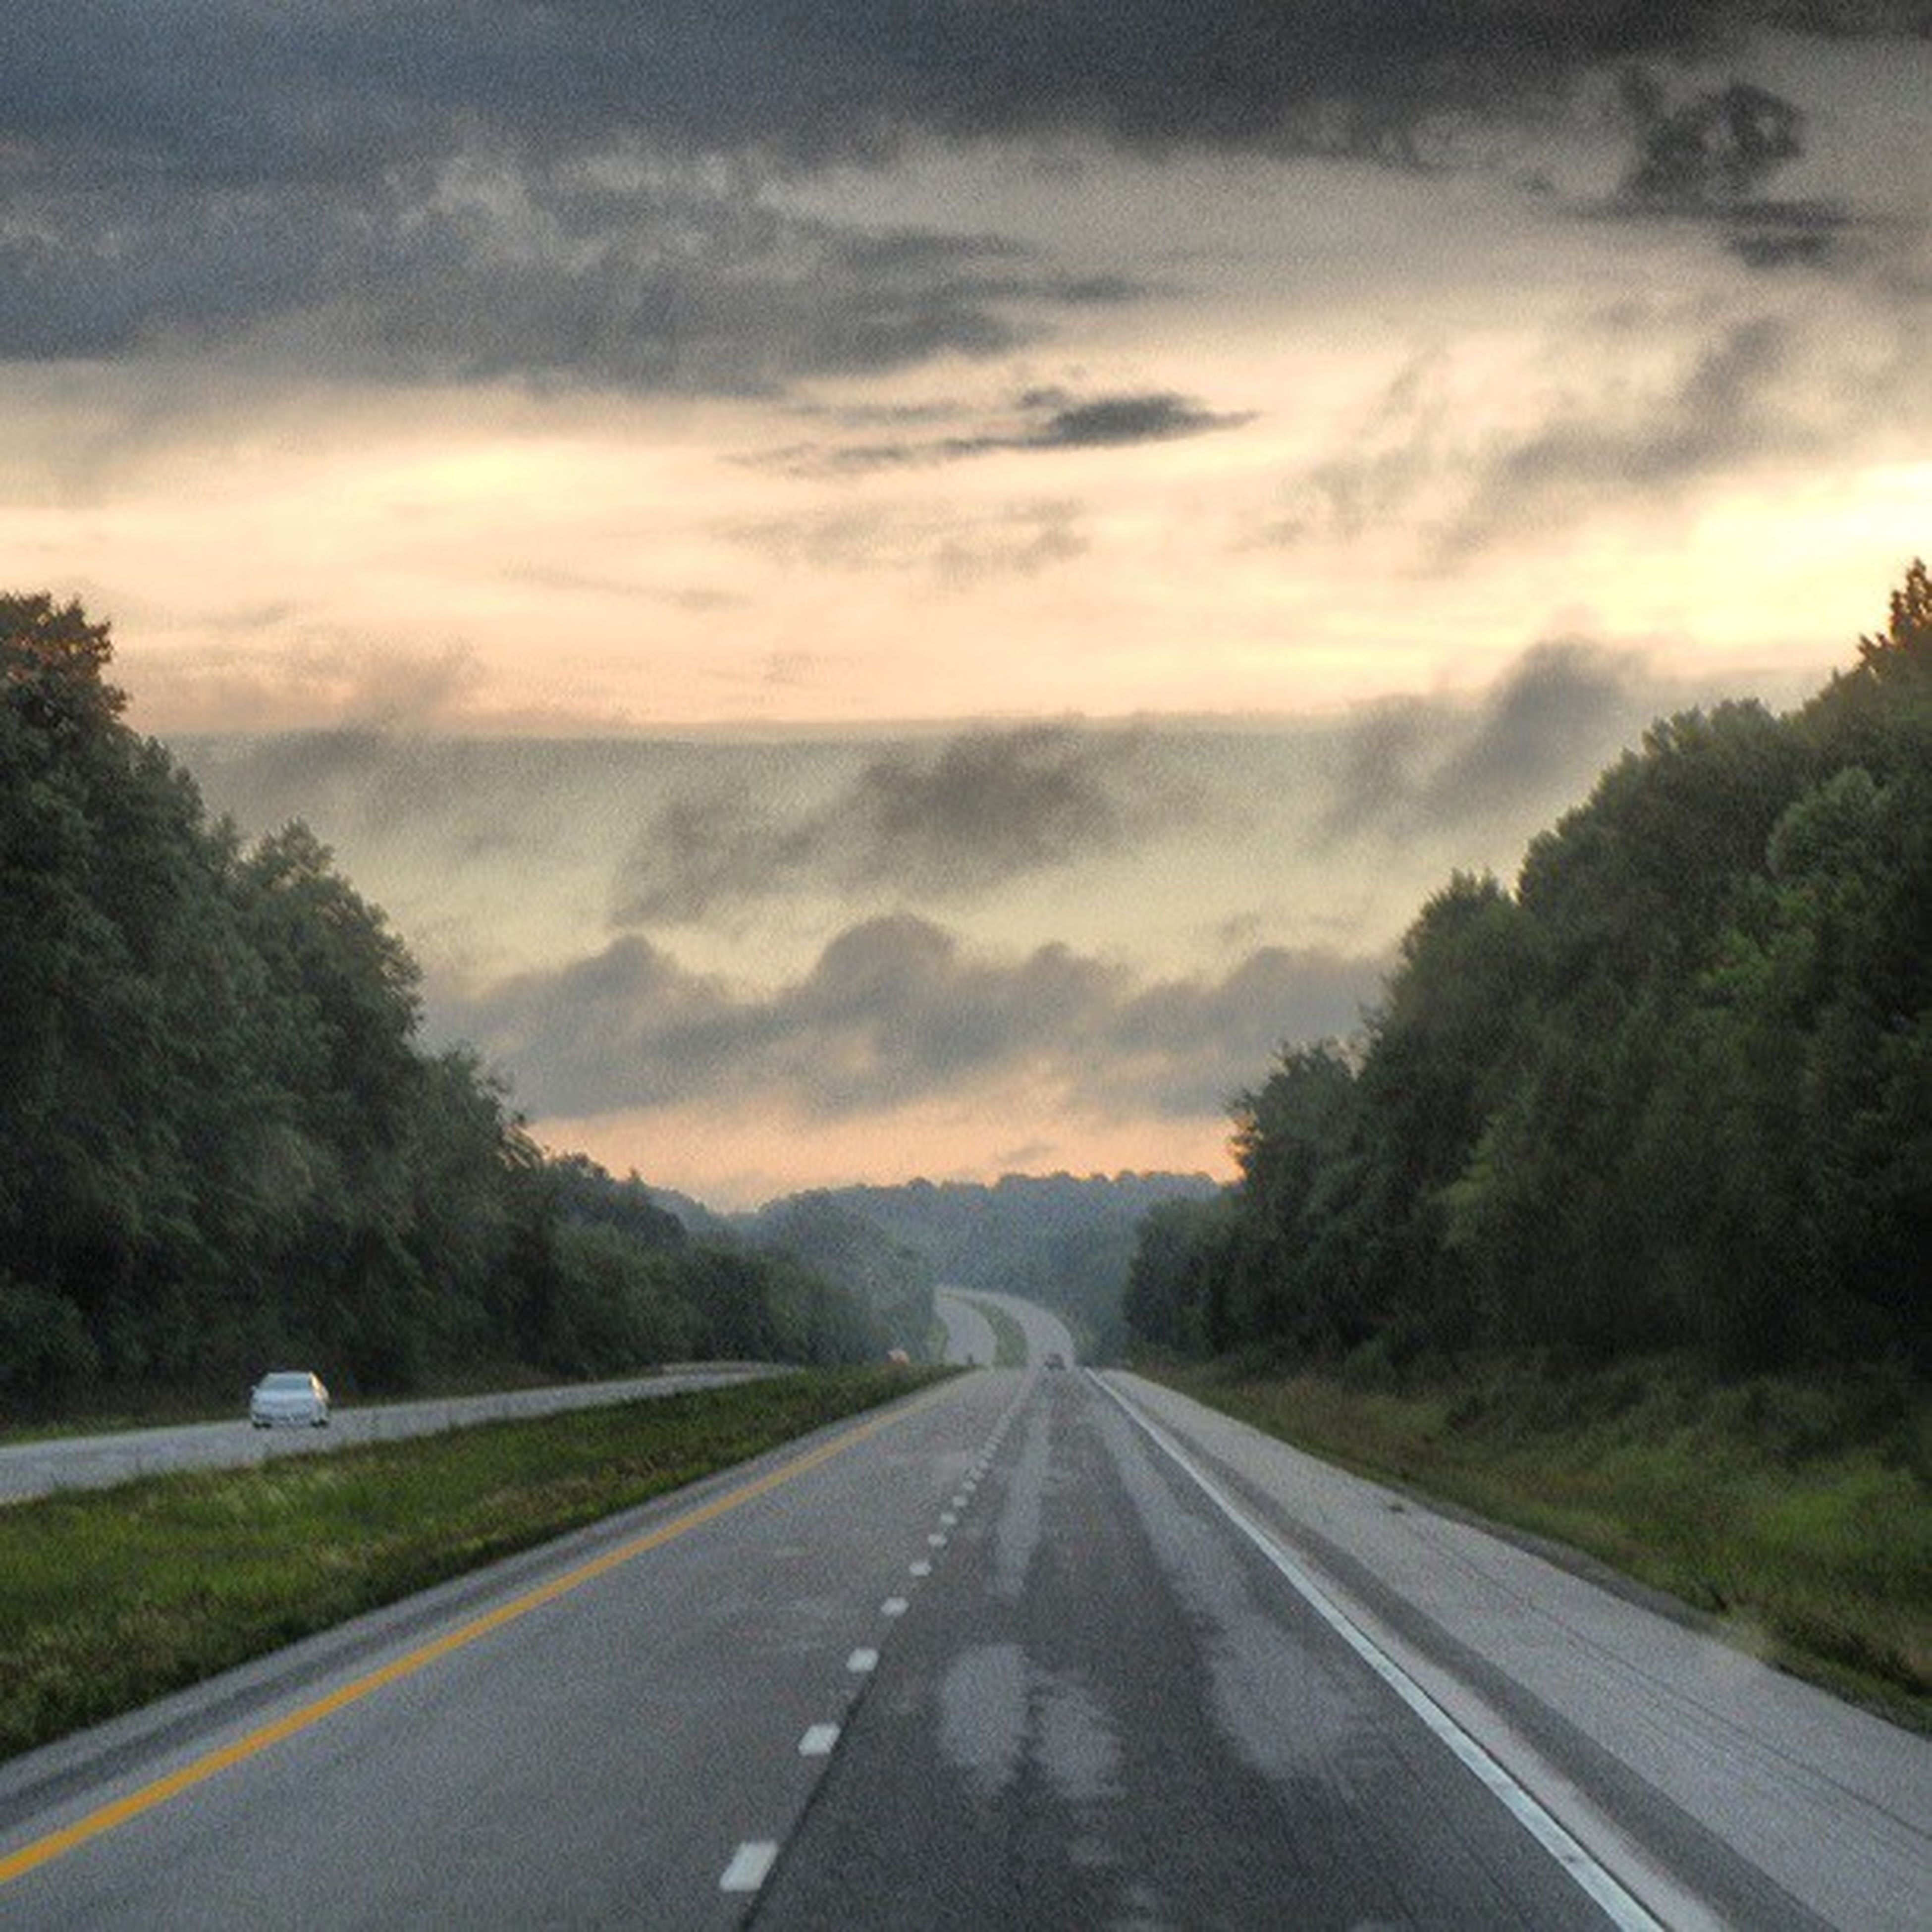 the way forward, road, sky, transportation, cloud - sky, tree, cloudy, diminishing perspective, vanishing point, country road, road marking, cloud, sunset, nature, weather, tranquility, beauty in nature, tranquil scene, scenics, empty road